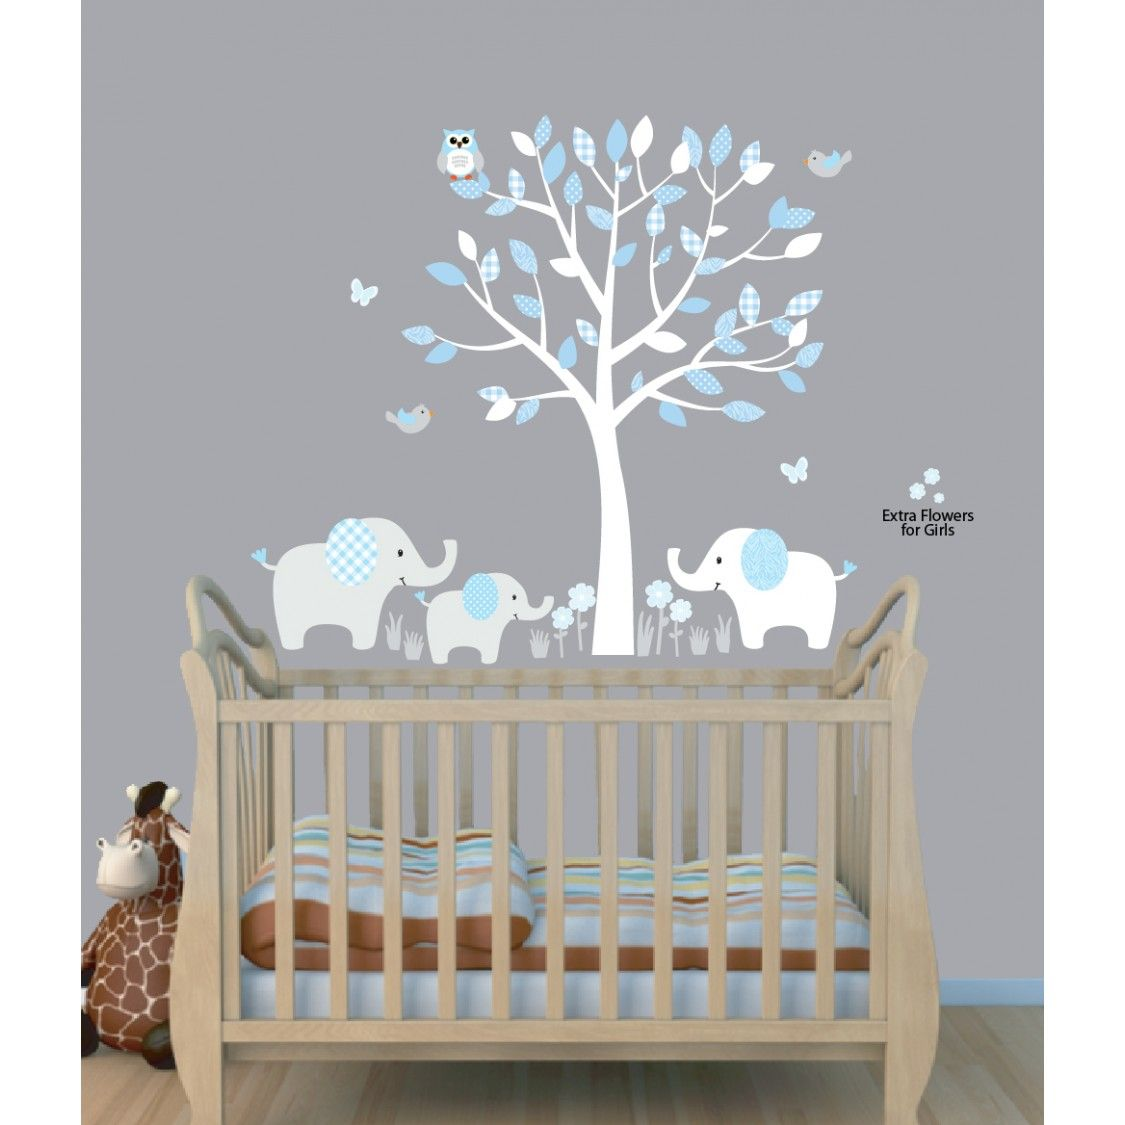 Baby nursery decor elephants below beautiful tree baby boy baby nursery decor elephants below beautiful tree baby boy nursery decals blue theme color owl amipublicfo Gallery